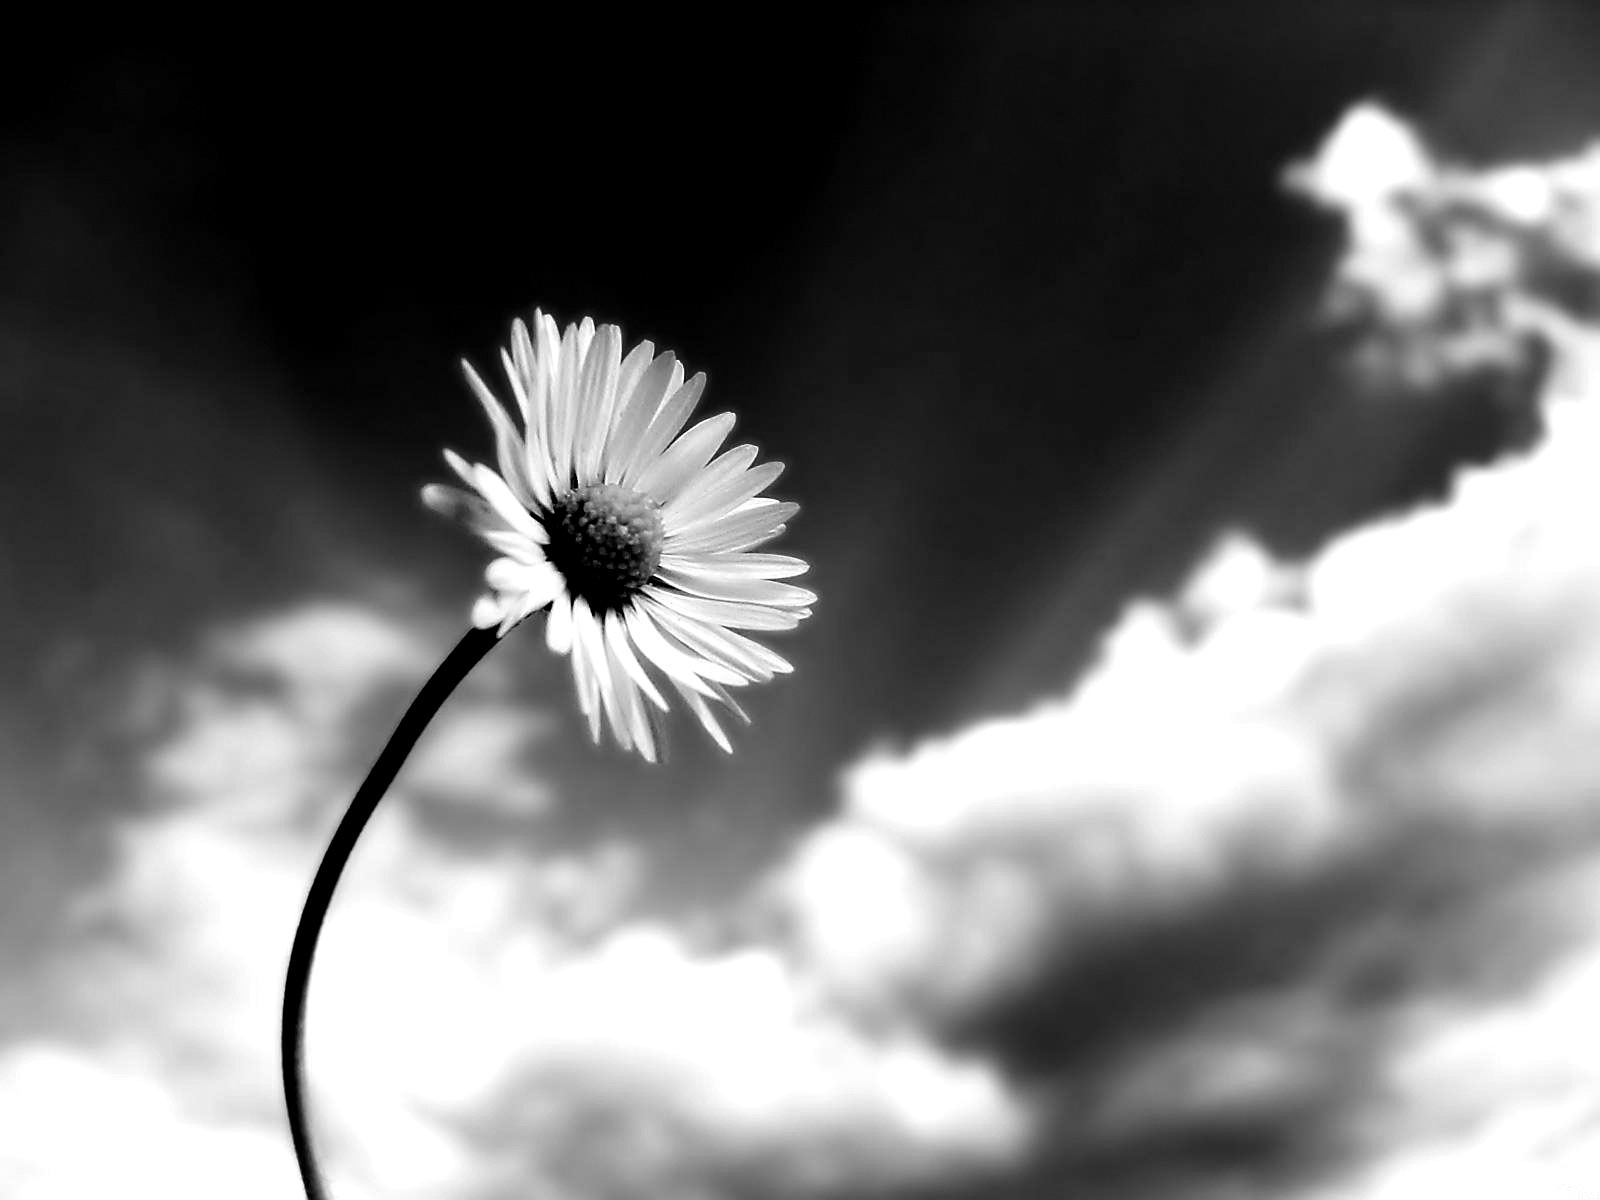 Black And White Flowers Wallpaper 1600x1200 51482